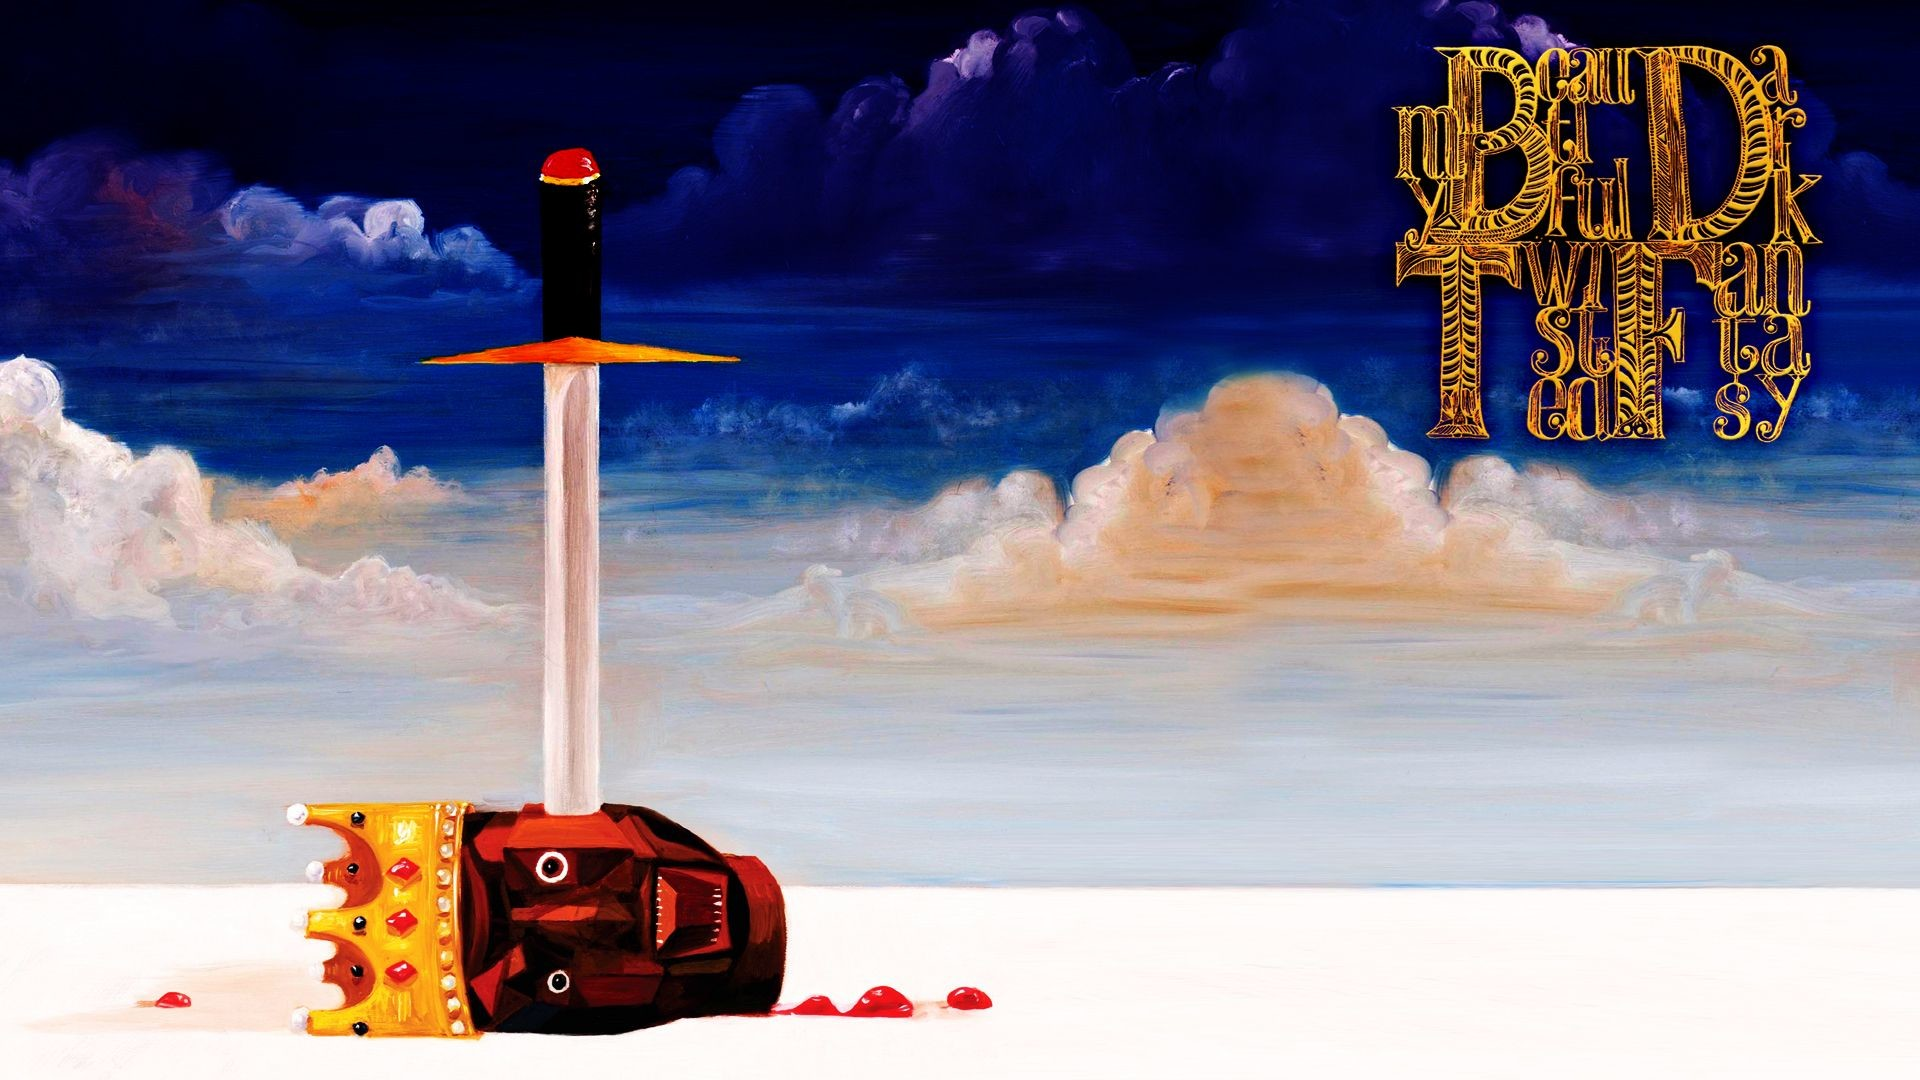 Kanye West Hd Wallpaper Power 70 Images